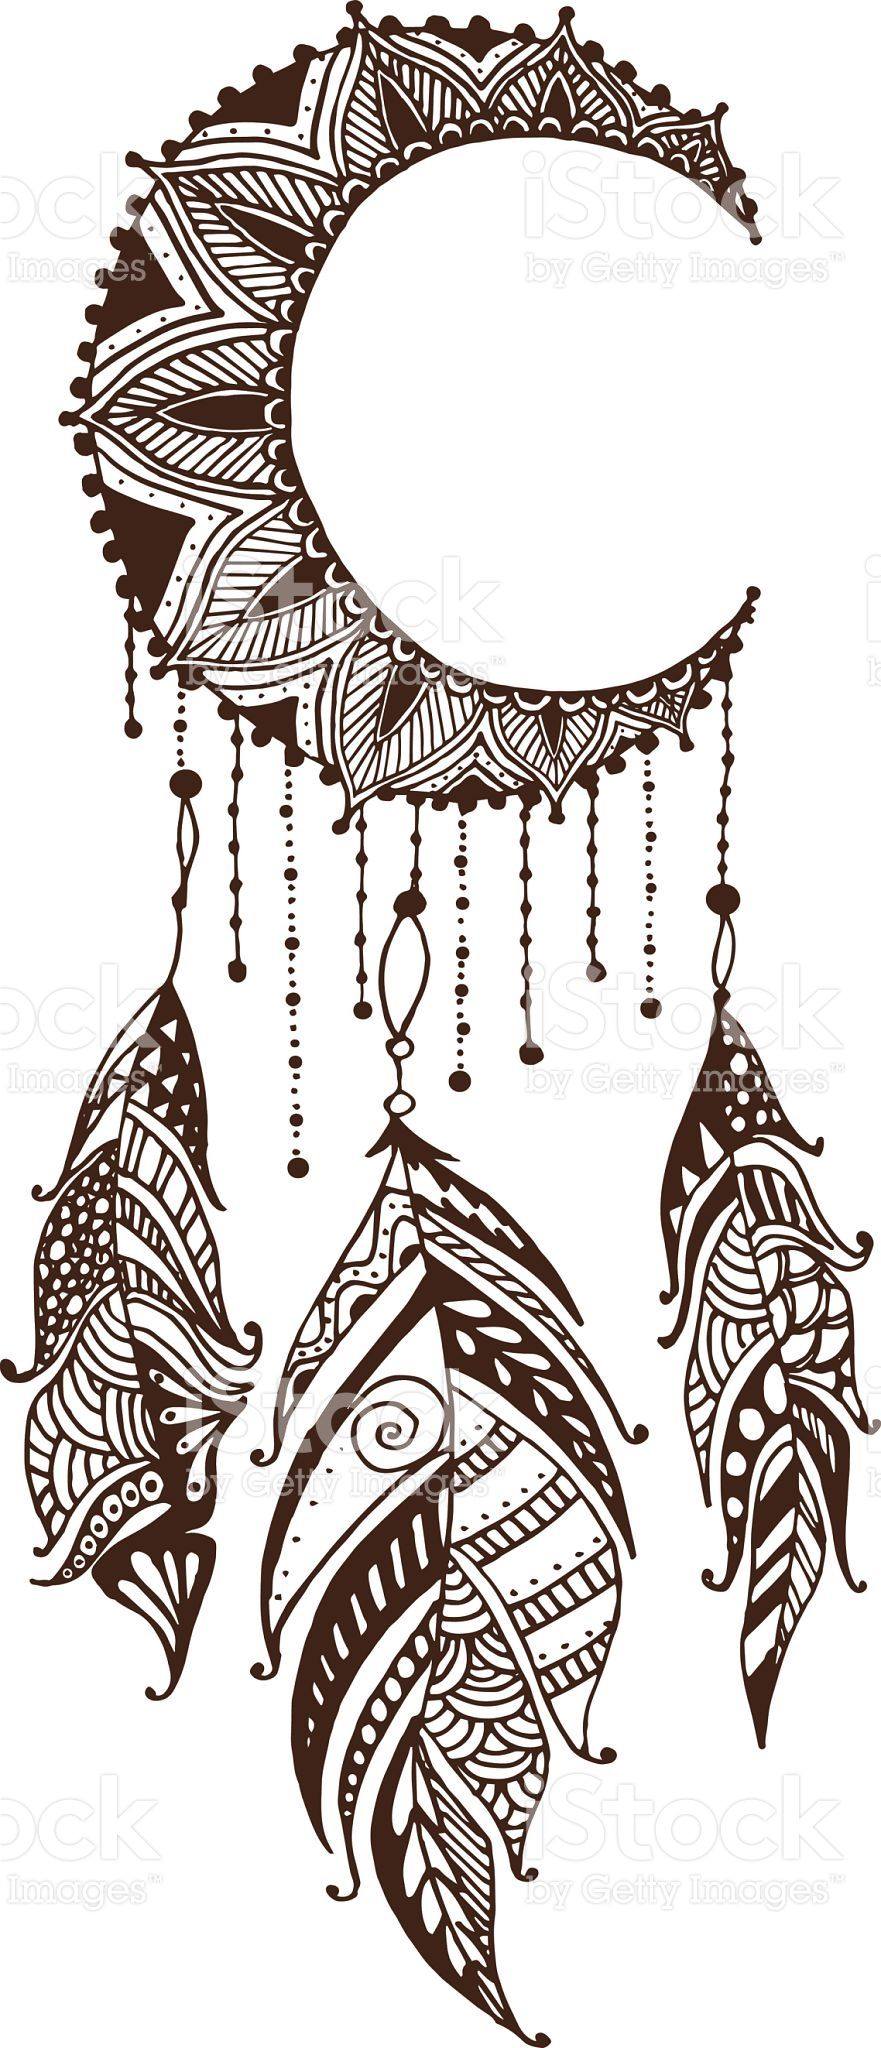 Hand Drawn Dreamcatcher With Feathers Ethnic Illustration